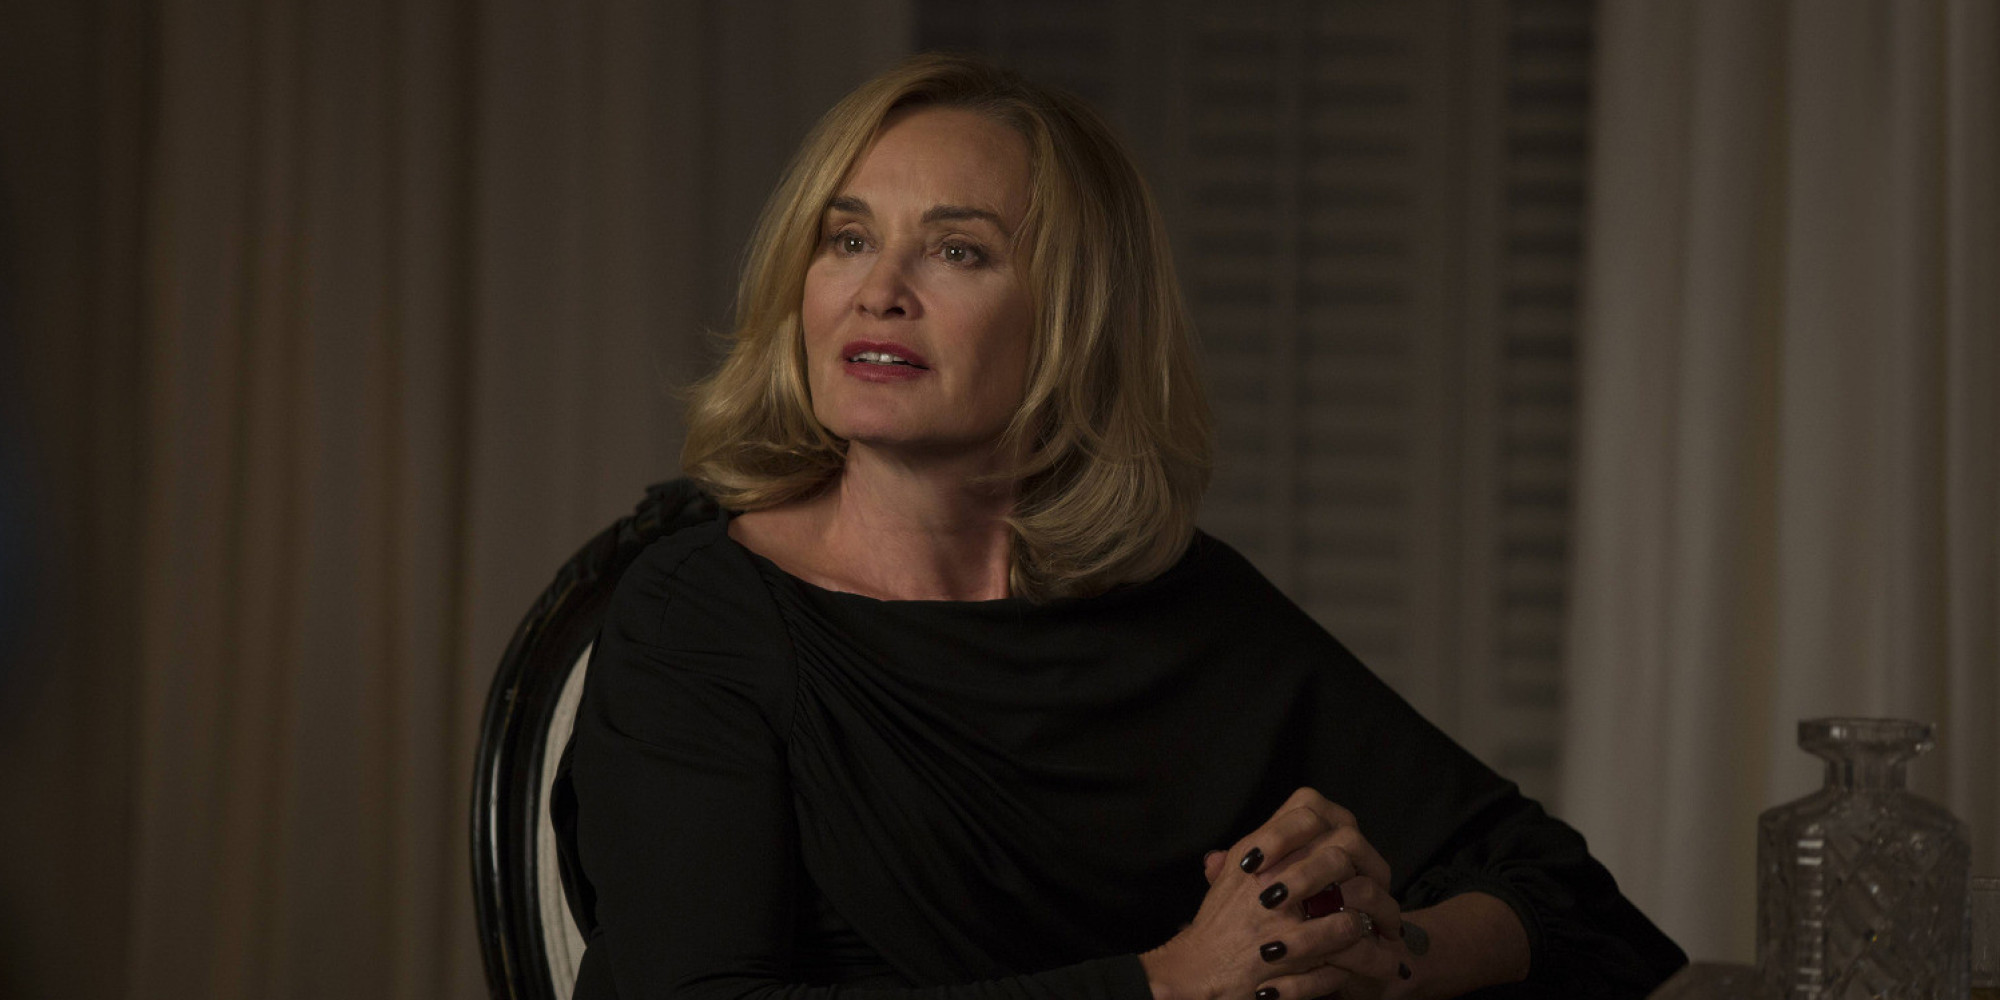 """Jessica Lange Says It's Unlikely That She'll Be Appearing in Any Future Seasons of """"American Horror Story"""" - Bloody Disgusting"""